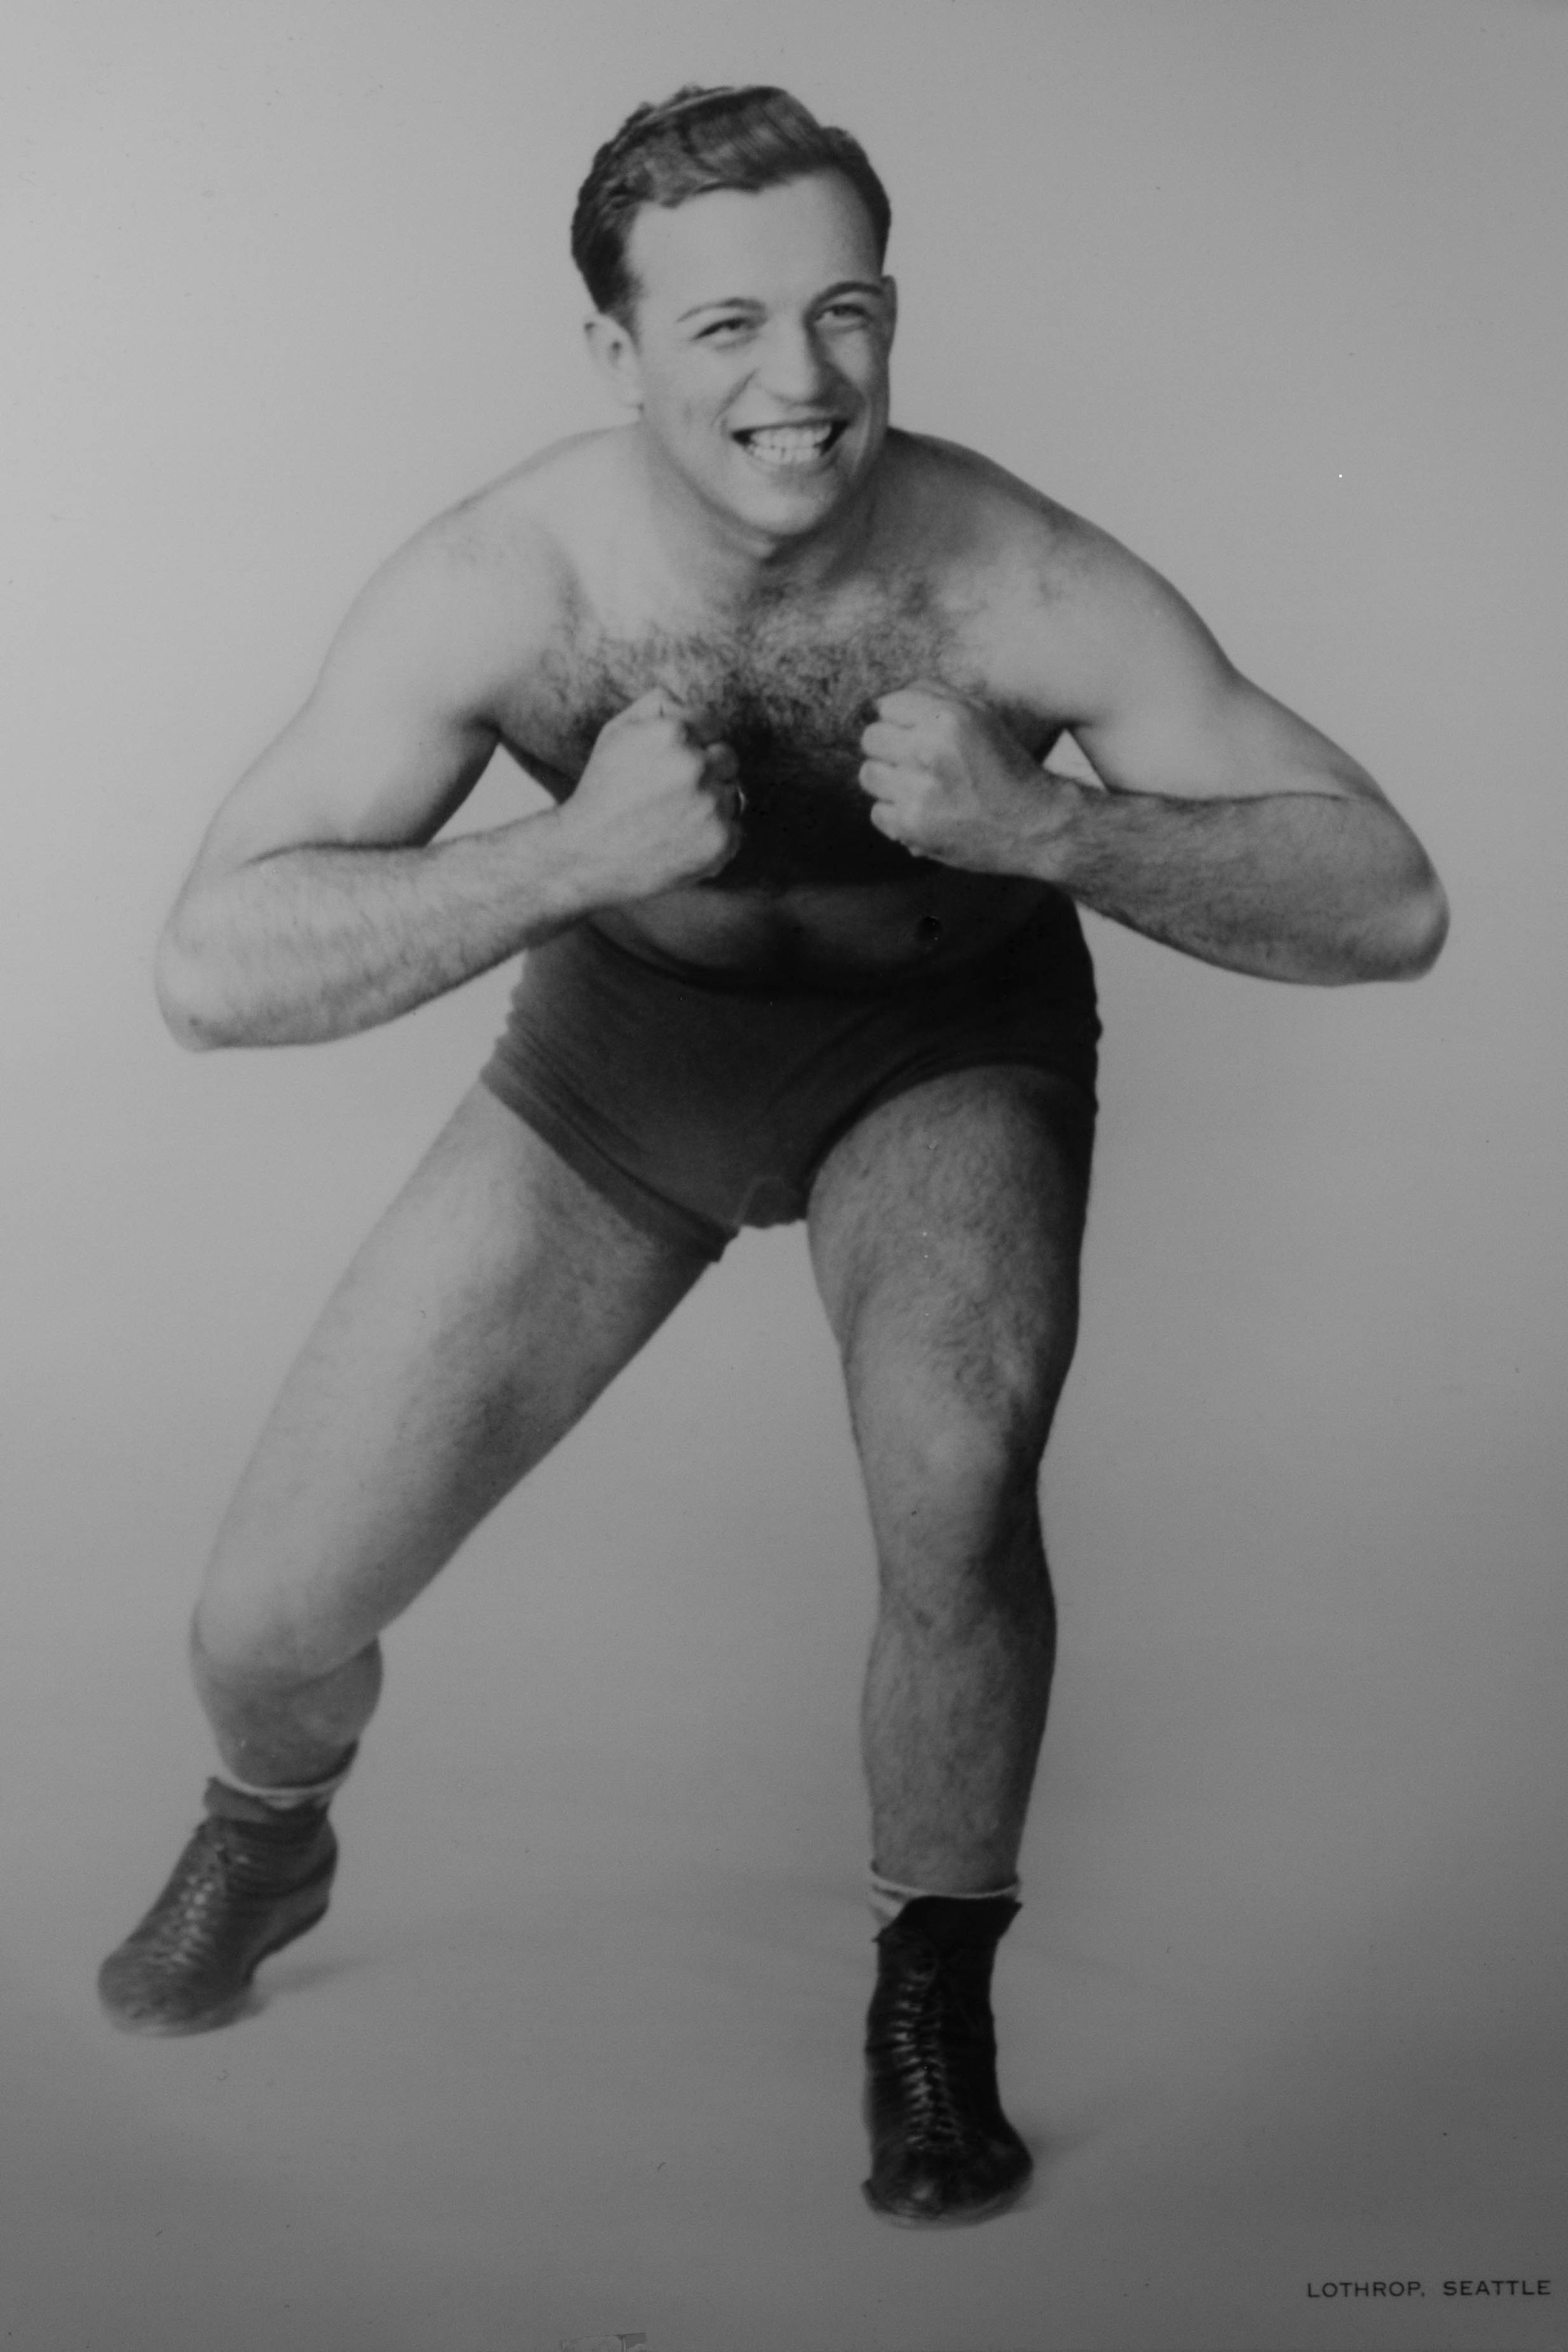 This is uncle Mike, one of my many professional wrestling uncles from back in the days before steroids and folding chairs. My dad was the youngest, tallest, skinniest, and also the most,actually the only bookish brother, and the only non-wrestler in the Strelich crew. It made for a very colorful and strangely theatrical upbringing which probably explains a lot about my writing.